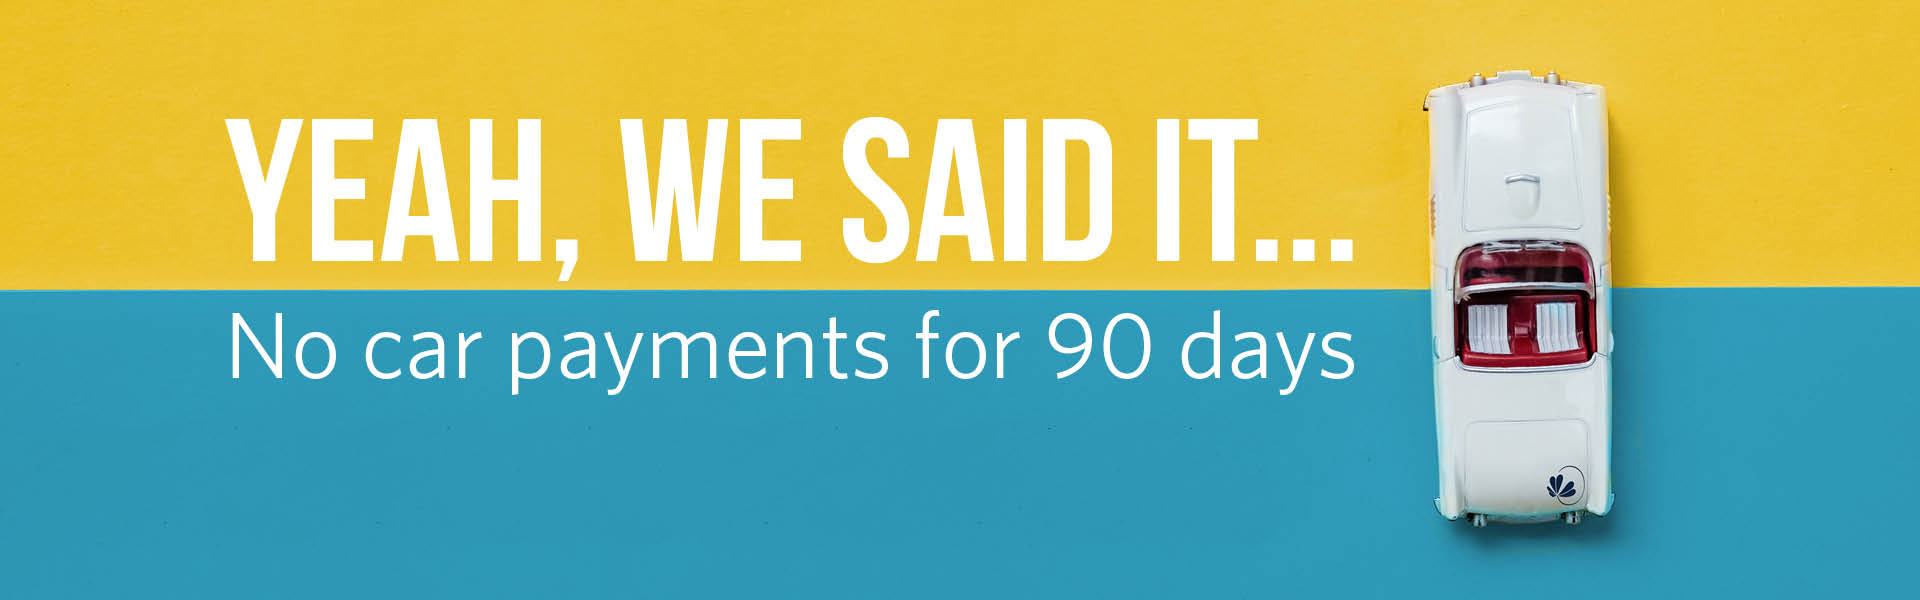 Yeah, we said it... No car payments for 90 days